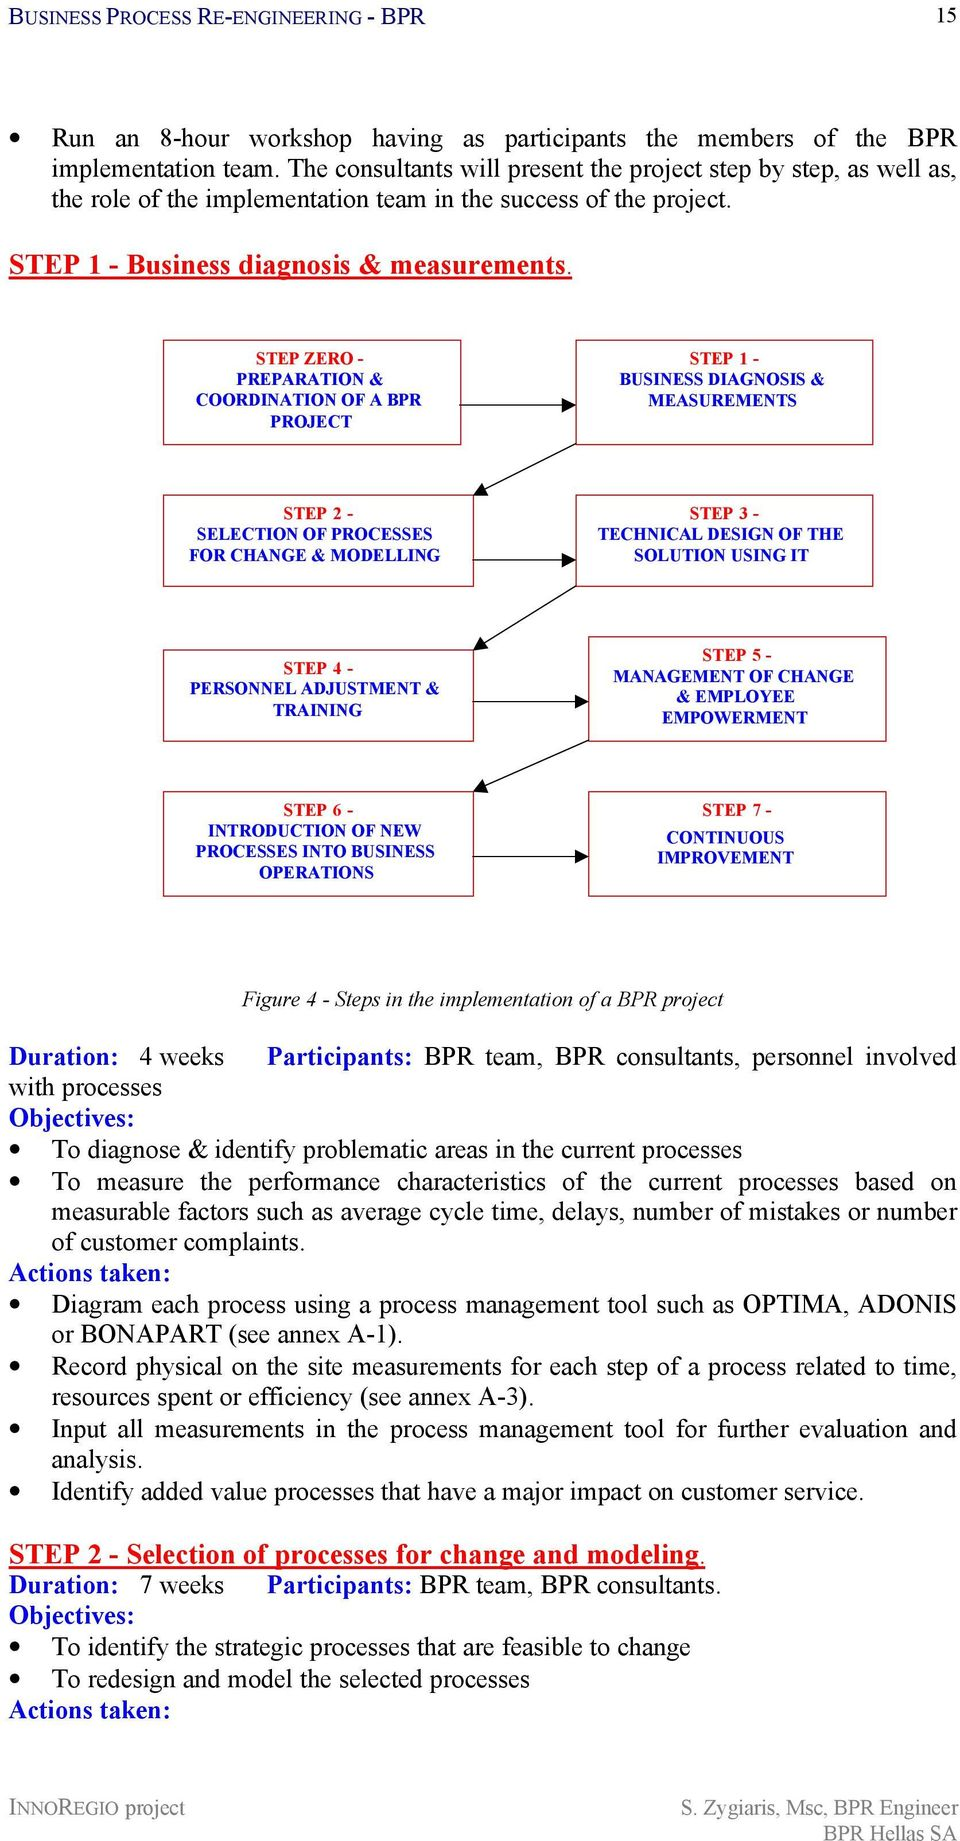 STEP ZERO - PREPARATION & COORDINATION OF A BPR PROJECT STEP 1 - BUSINESS DIAGNOSIS & MEASUREMENTS STEP 2 - SELECTION OF PROCESSES FOR CHANGE & MODELLING STEP 3 - TECHNICAL DESIGN OF THE SOLUTION